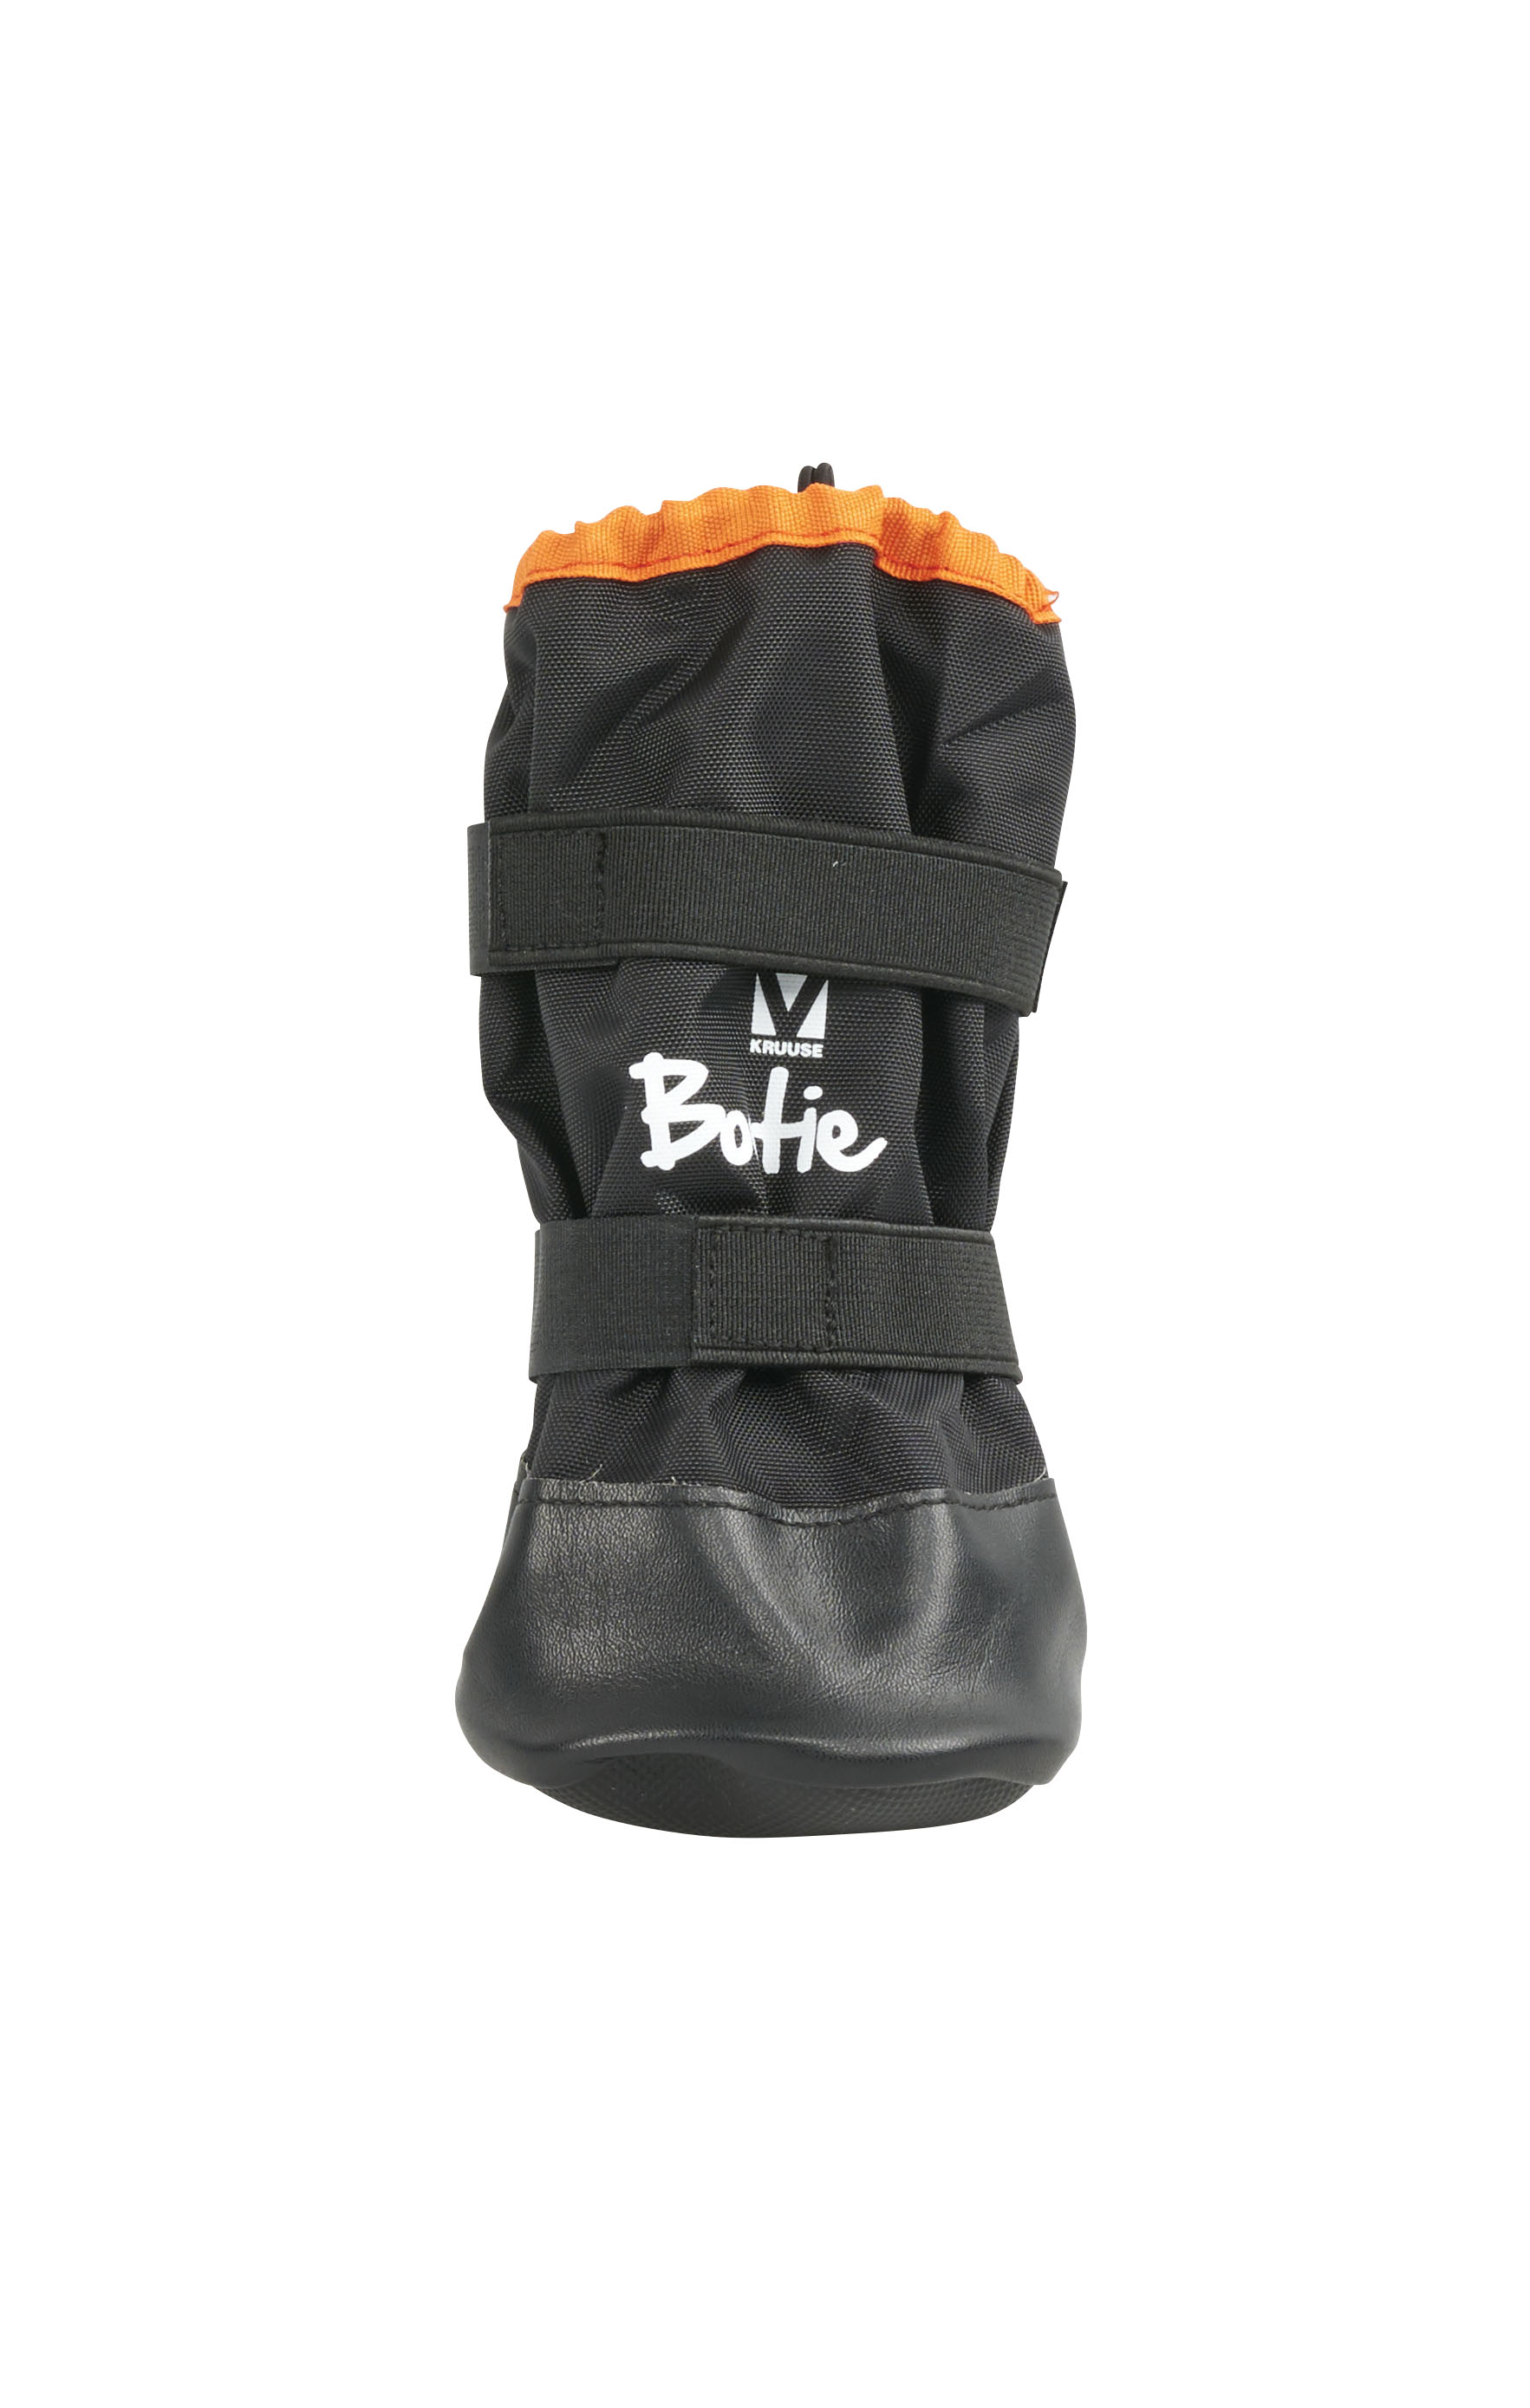 BUSTER Bootie Soft Sole - Short (orange)